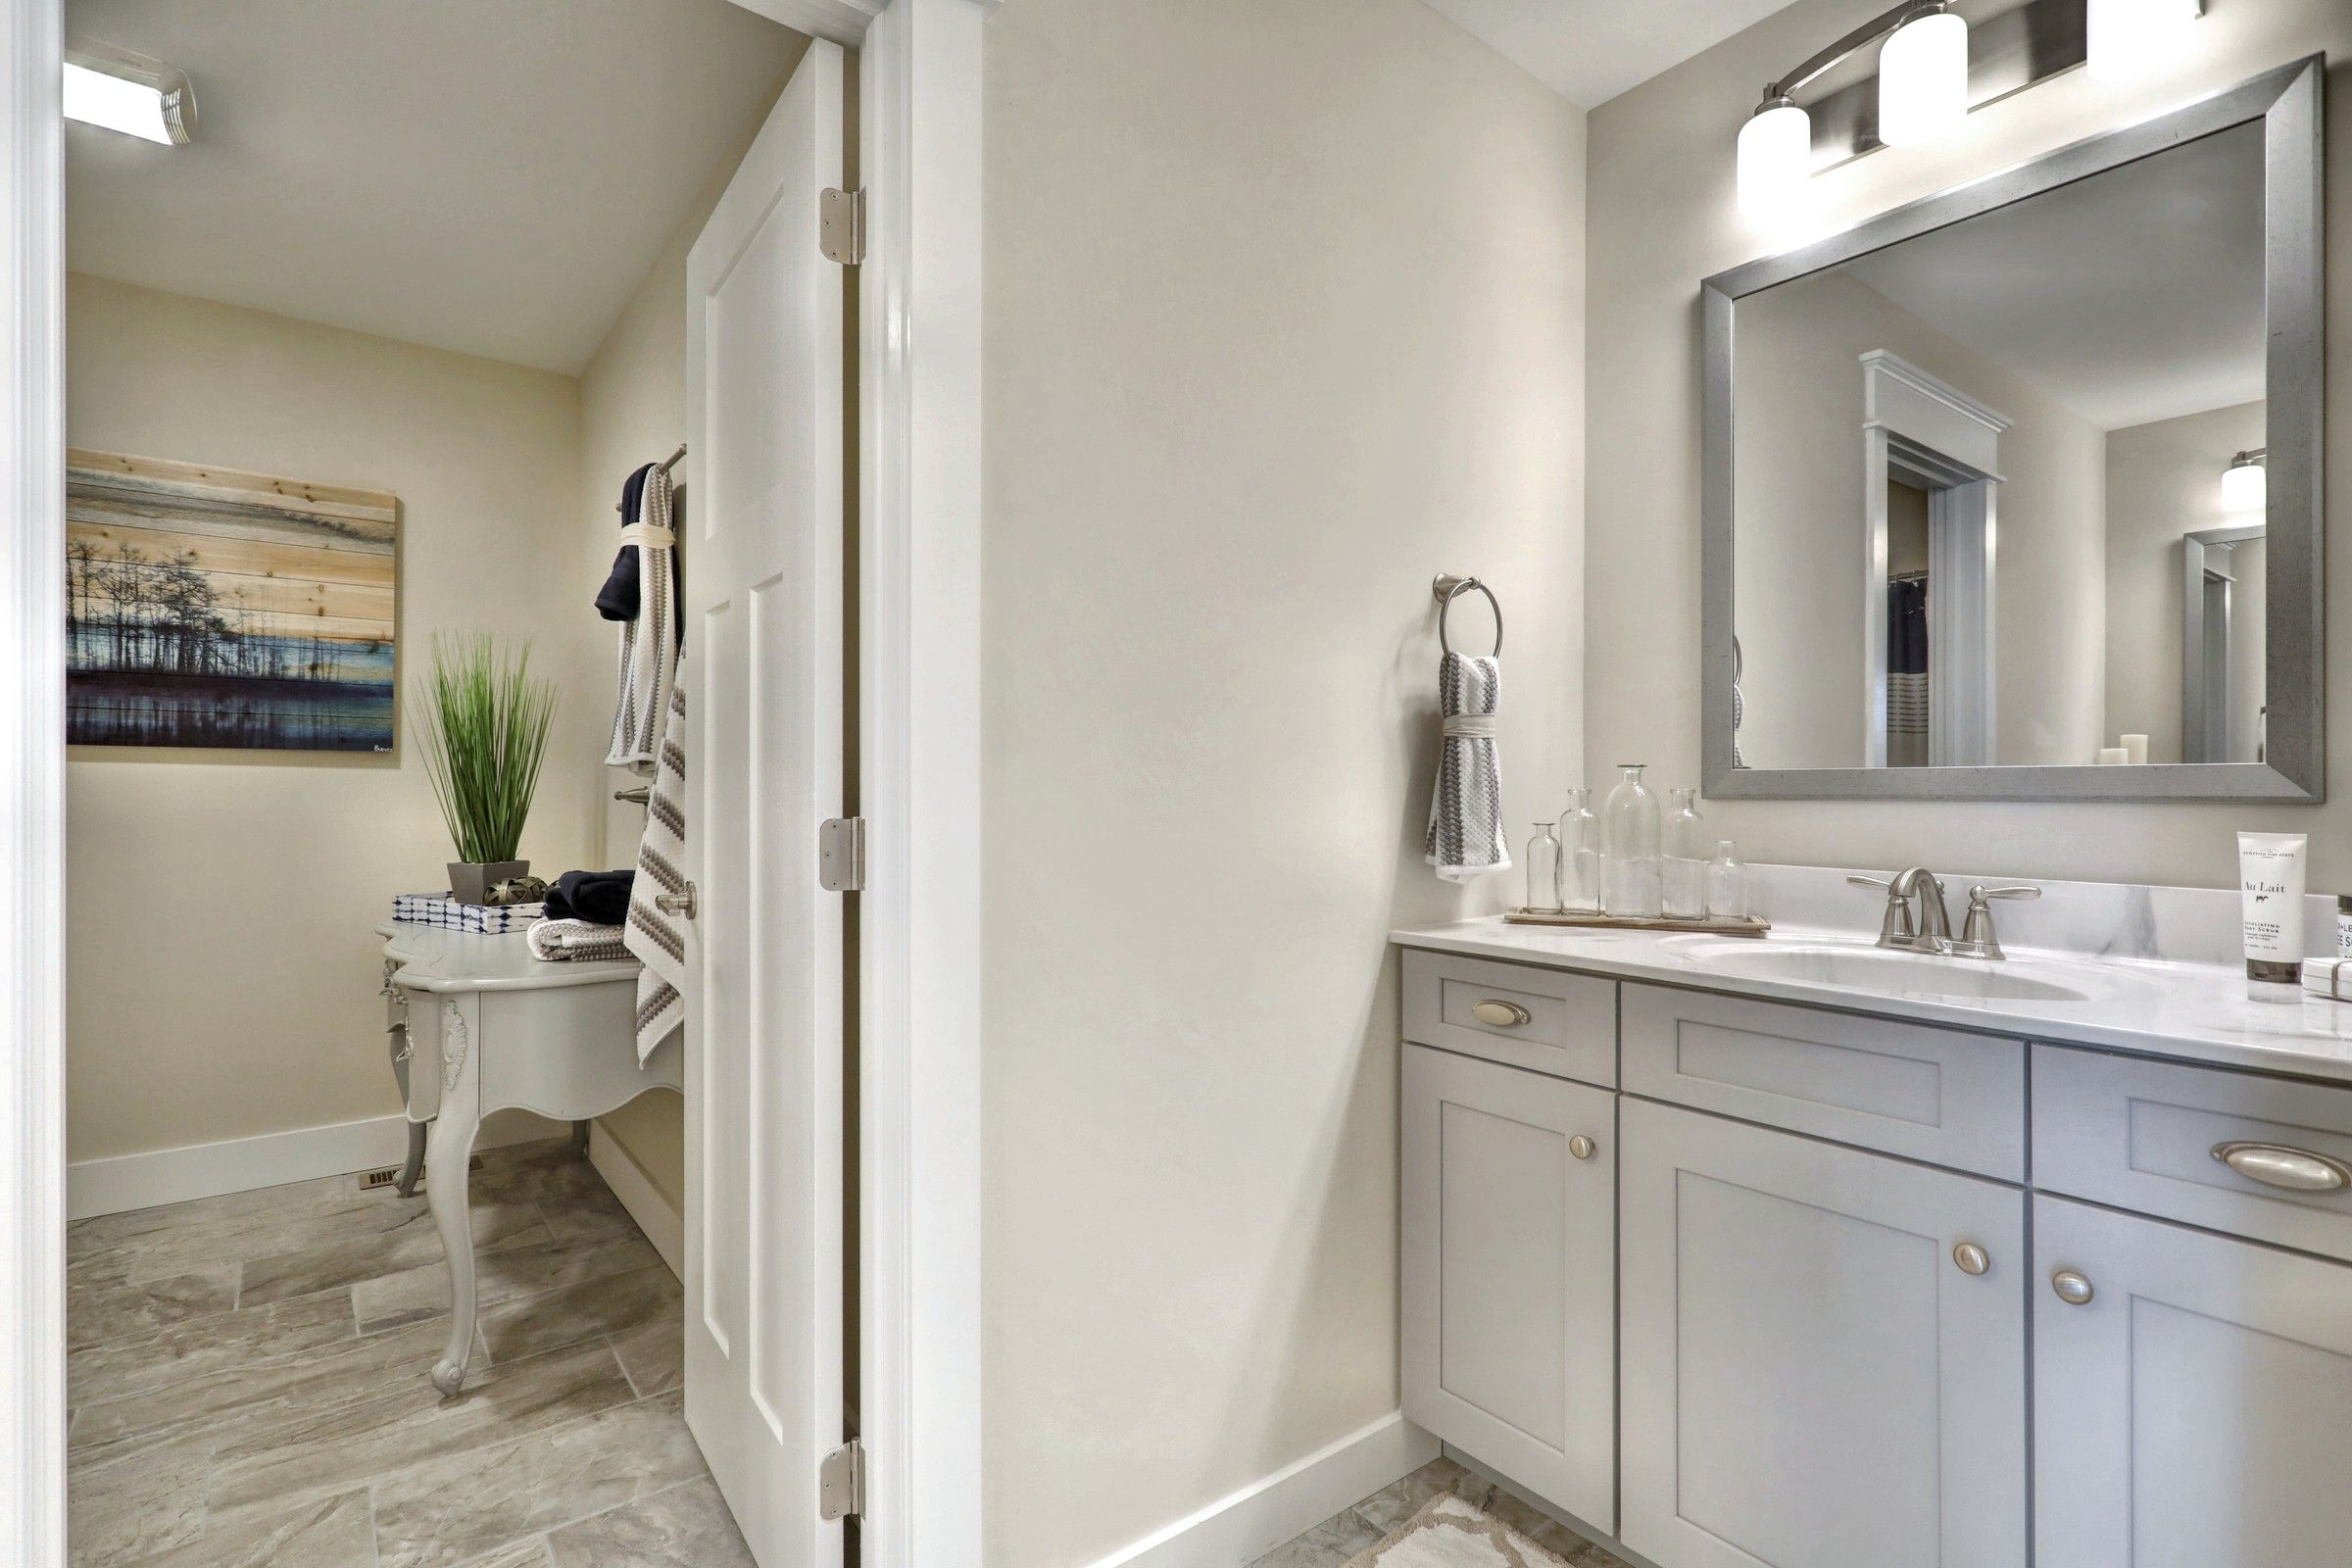 Bathroom featured in the Covington Heritage By Keystone Custom Homes in Lancaster, PA